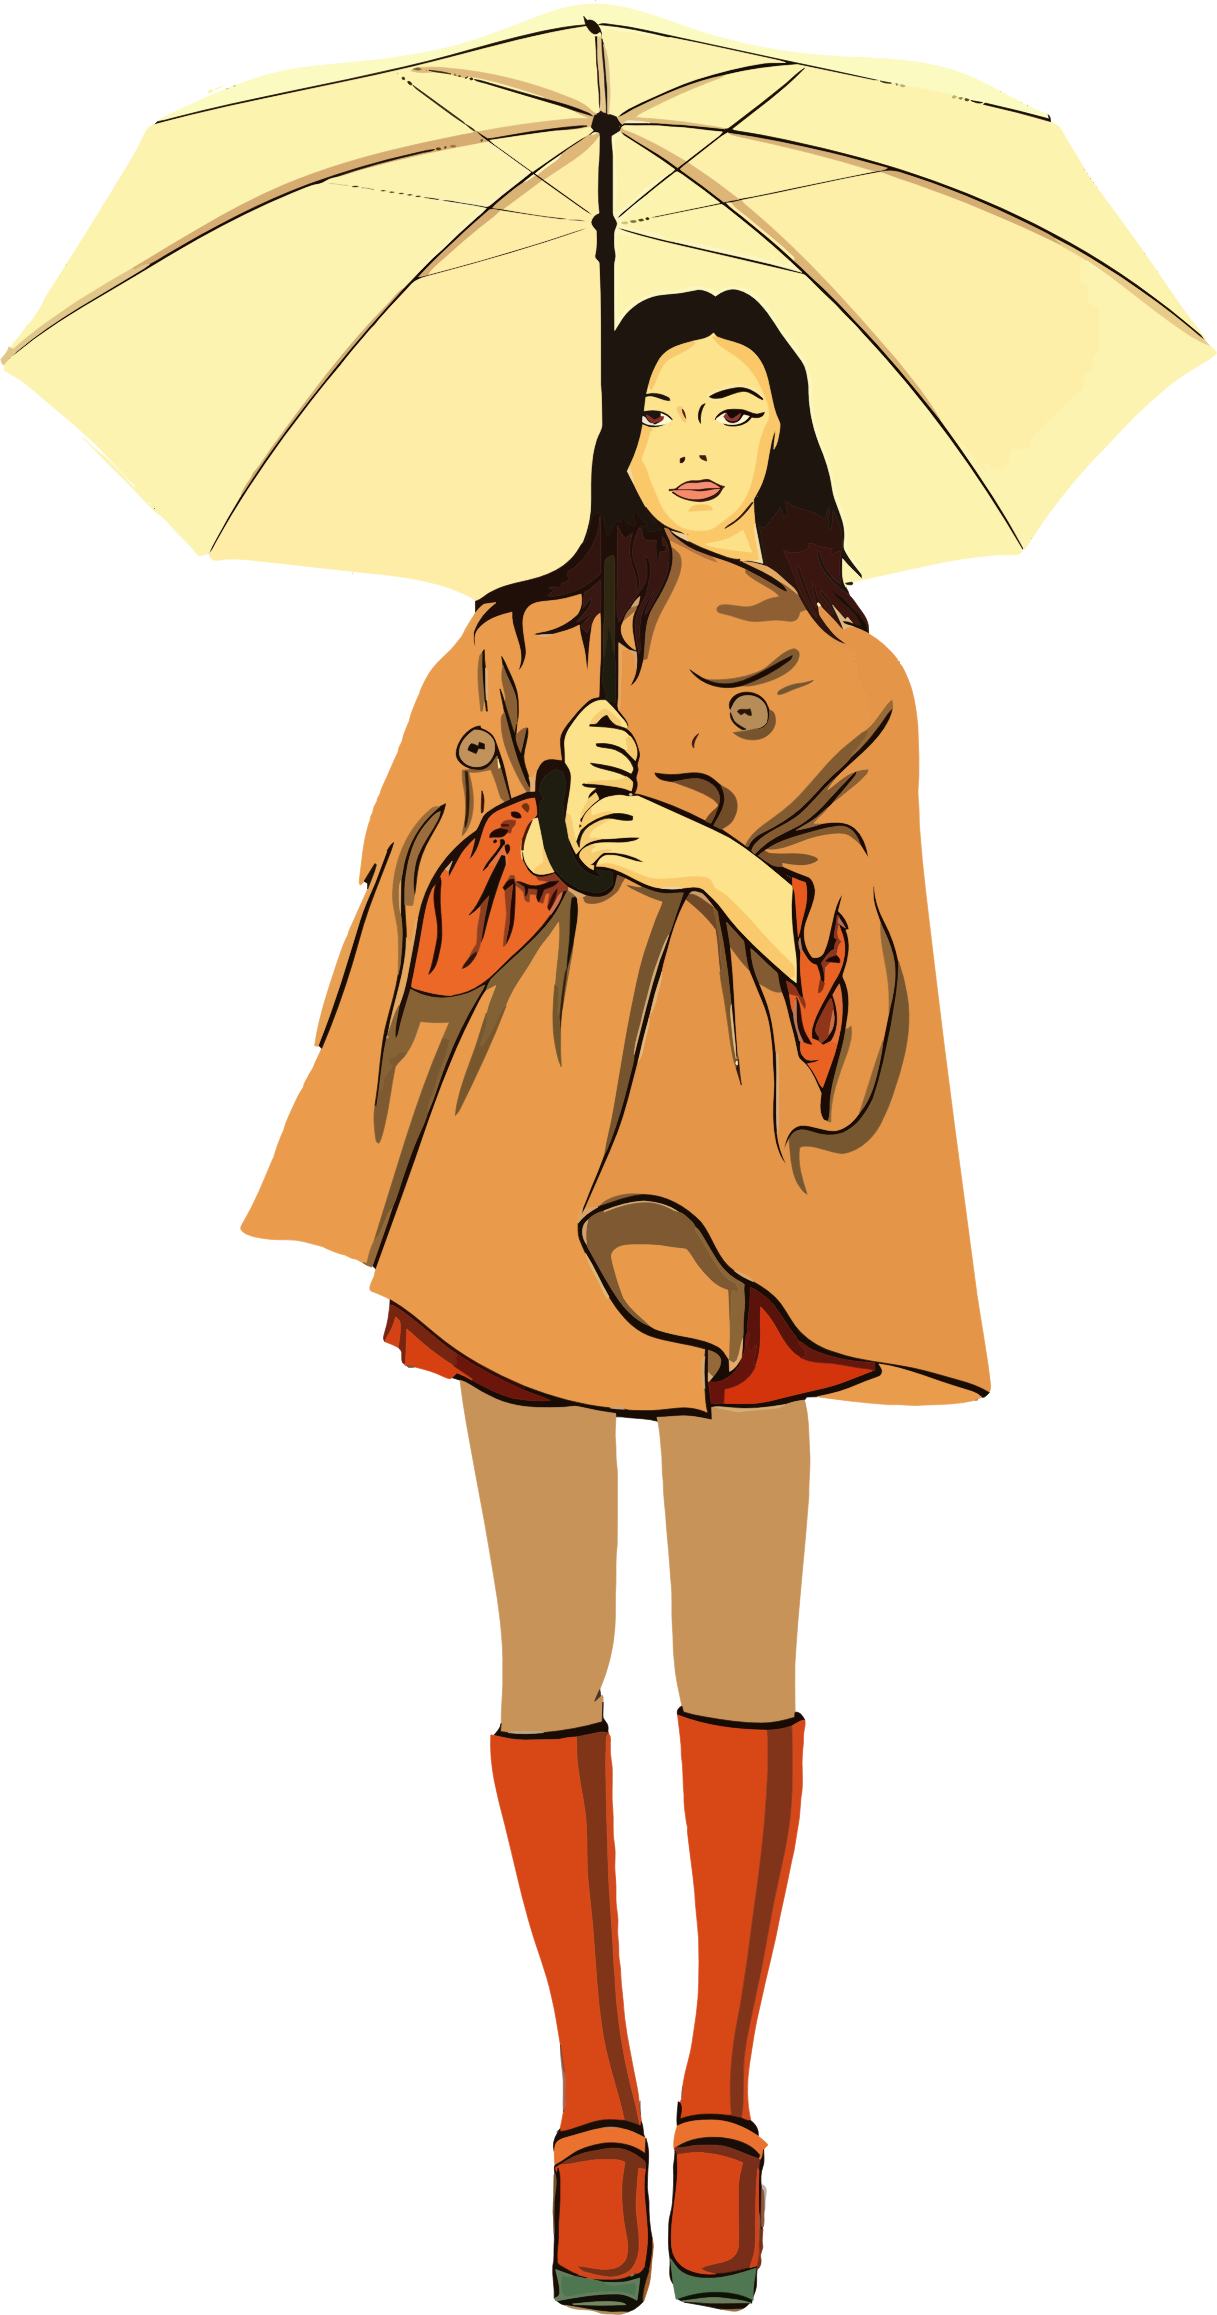 Clipart Woman With Umbrella